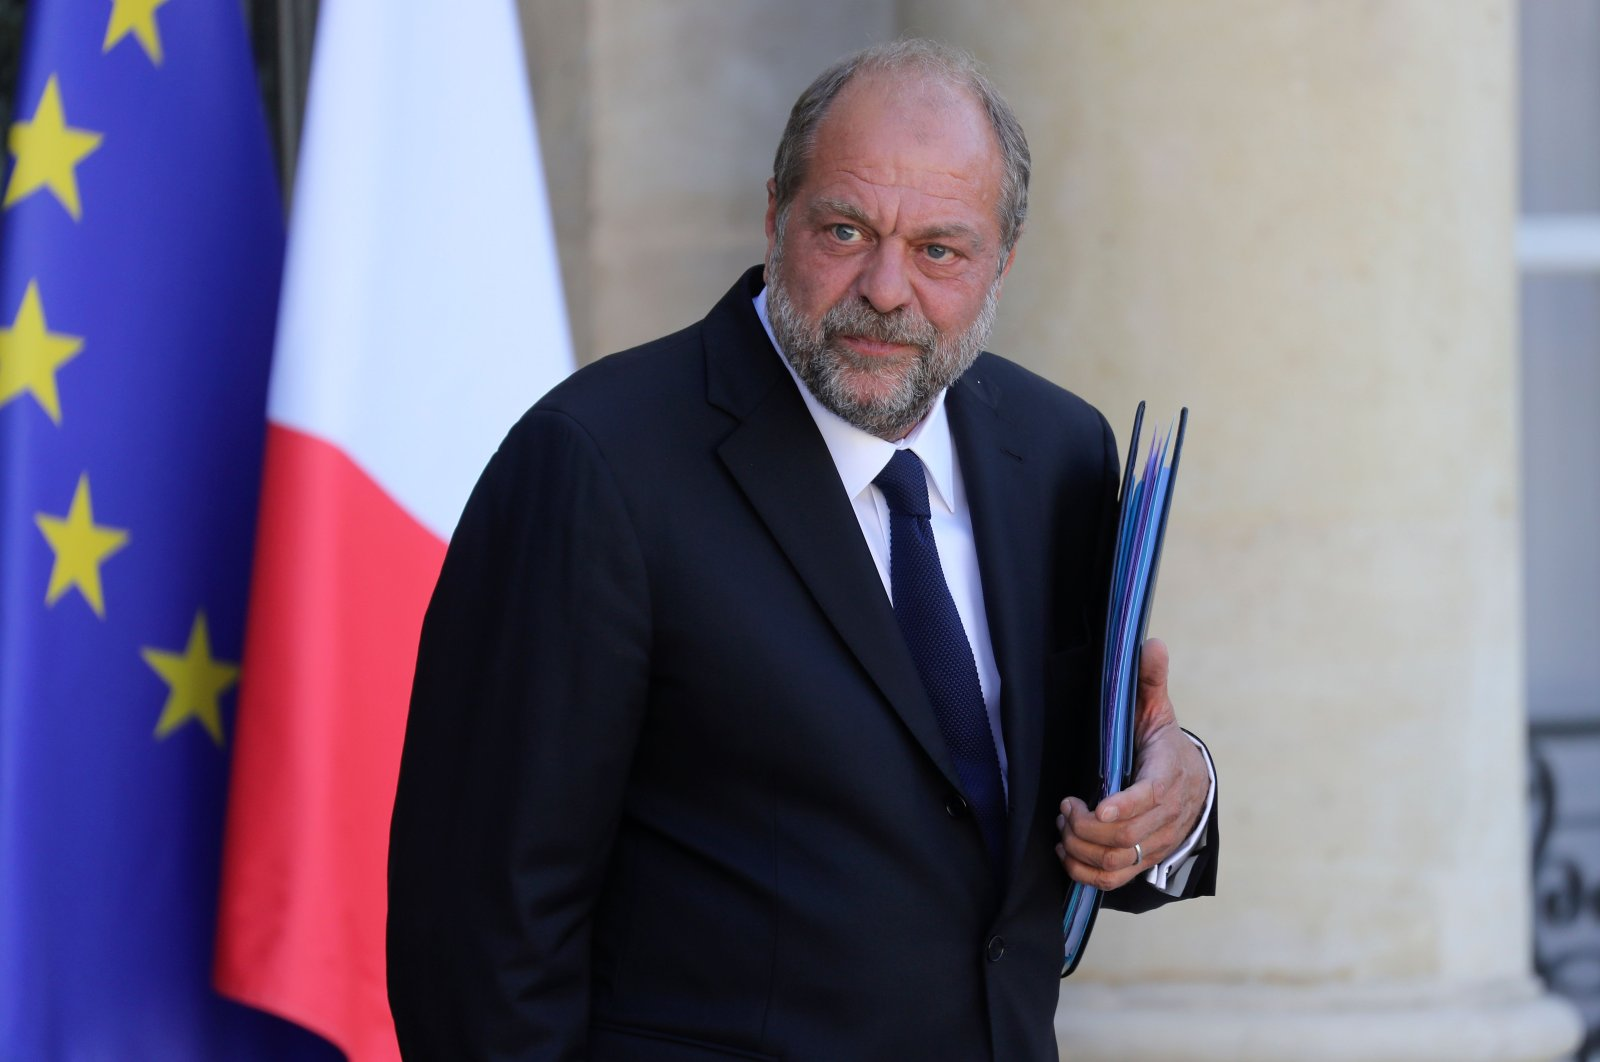 In this file photo, French Justice Minister Eric Dupond-Moretti leaves after attending the first weekly Cabinet meeting after the government reshuffle, at the Elysee Palace in Paris, July 7, 2020. (AFP Photo)